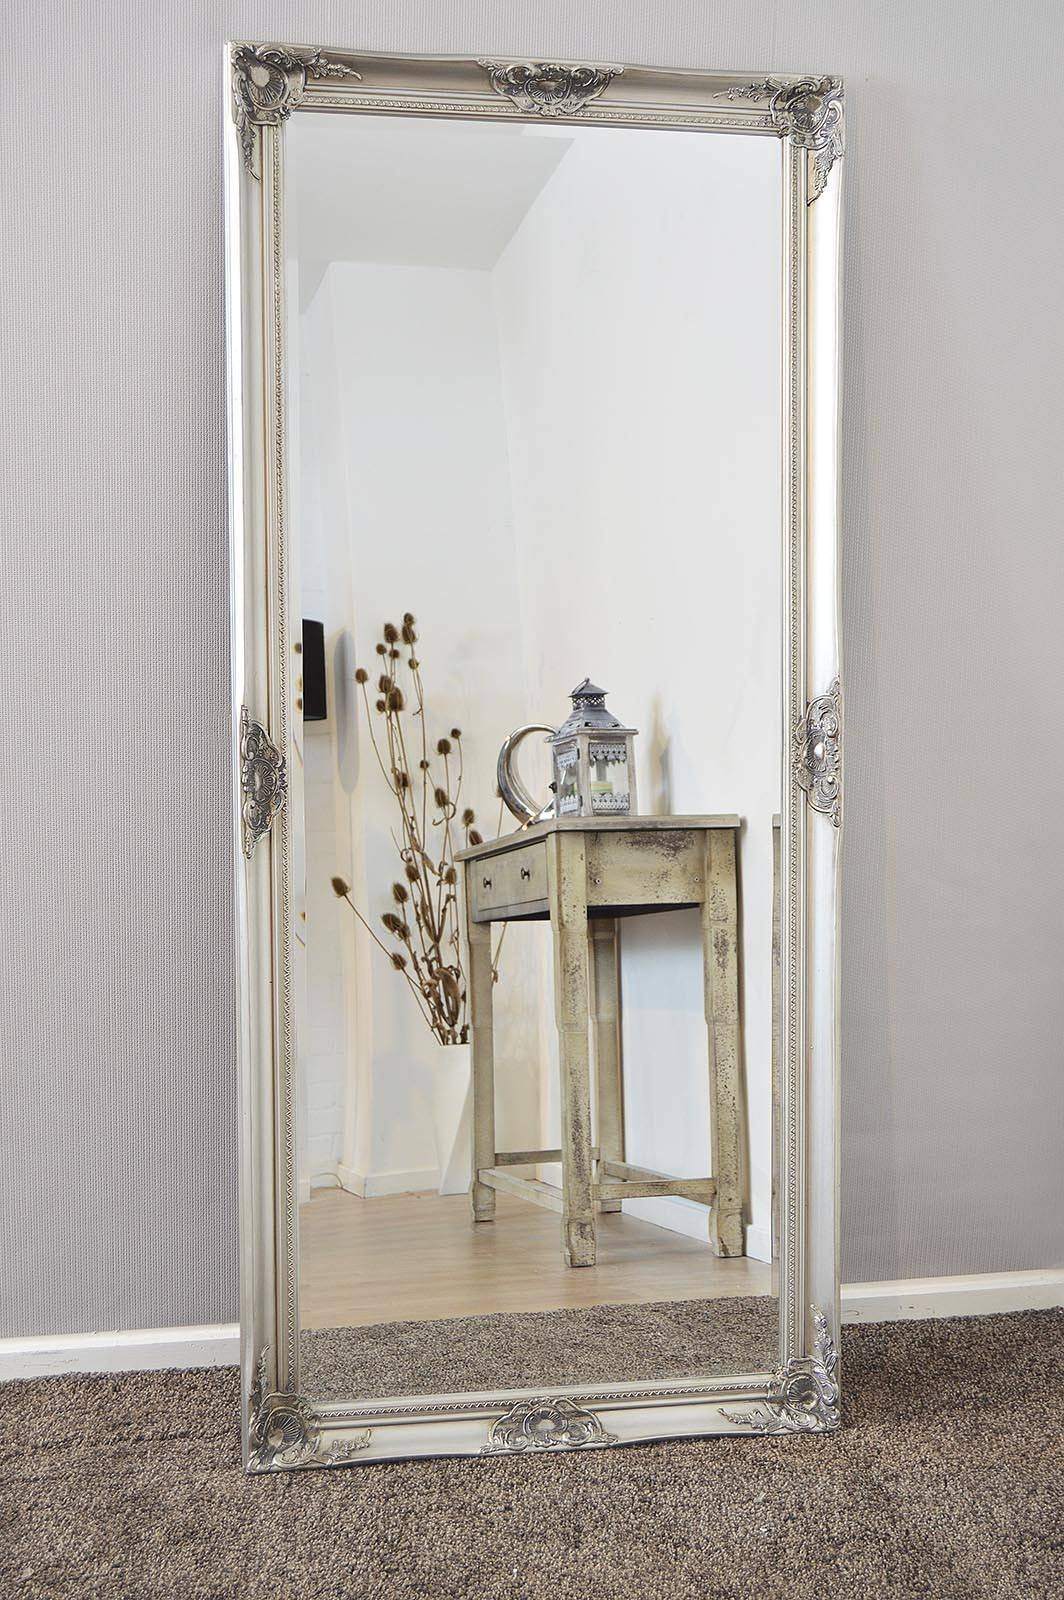 Shabby Chic Wall Mirror 88 Stunning Decor With Large Antique with regard to Large Ornate Silver Mirrors (Image 23 of 25)